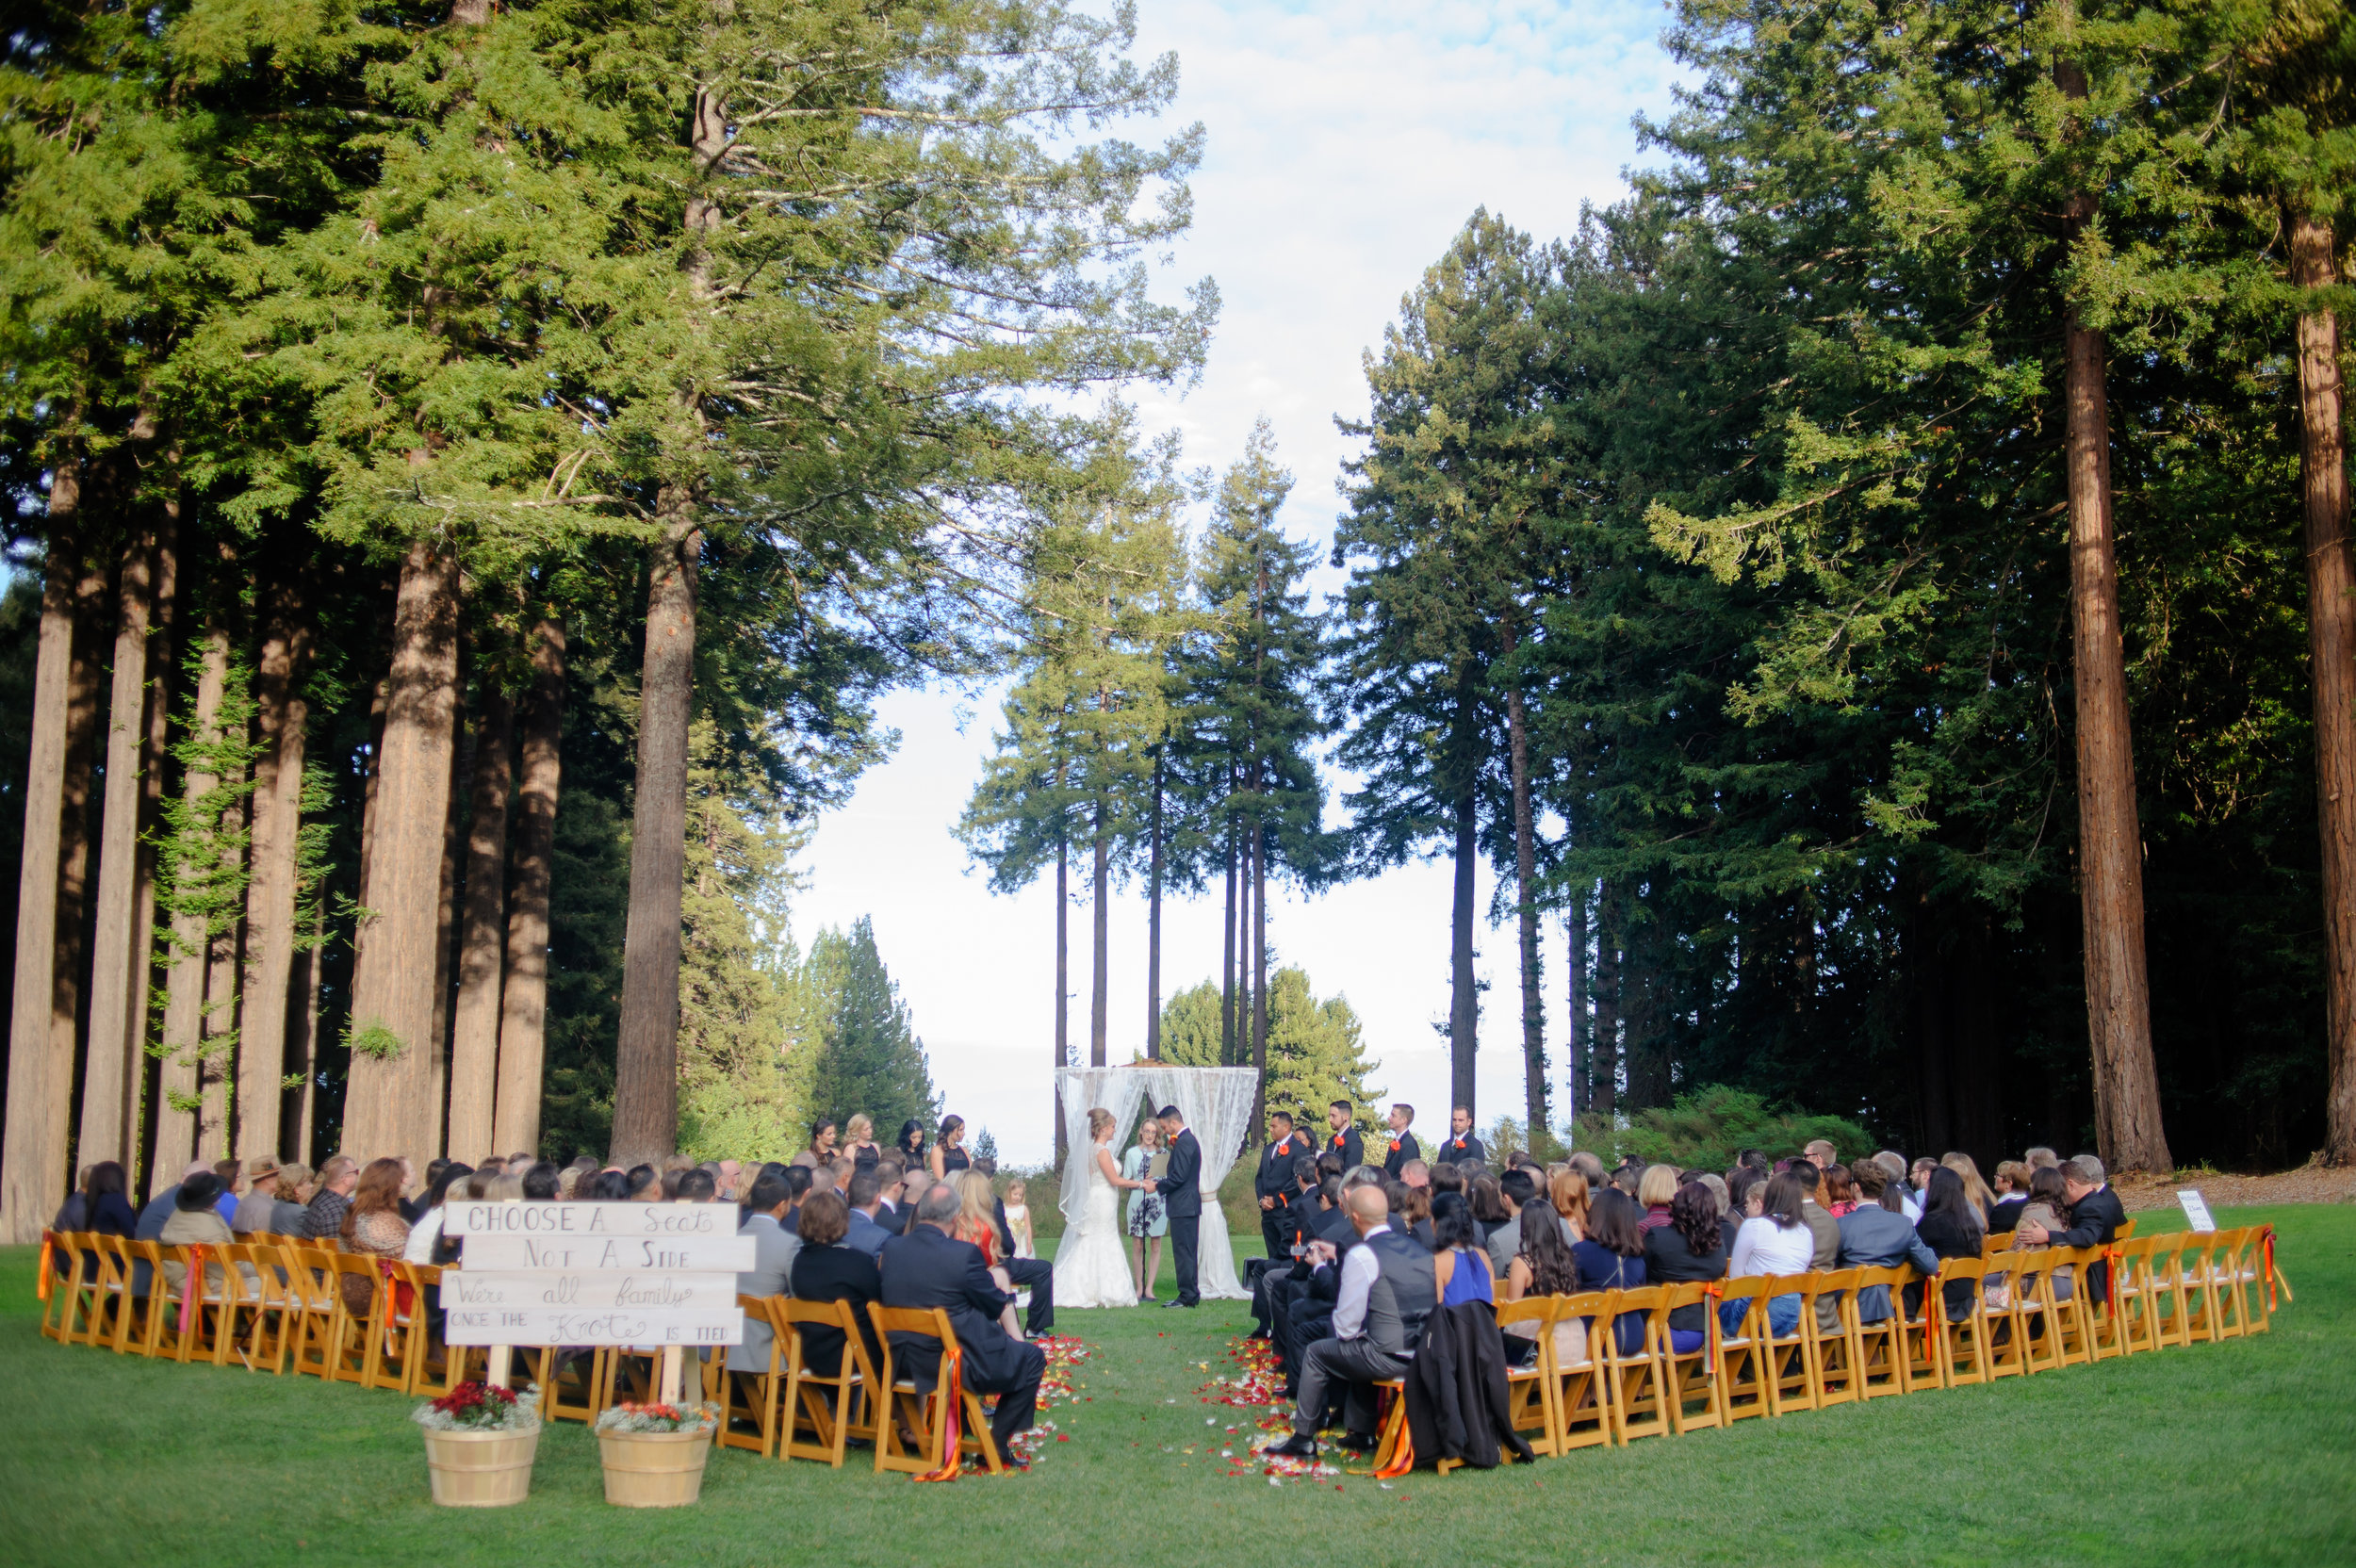 sammi-matt-013-the-mountain-terrace-woodside-wedding-photographer-katherine-nicole-photography.JPG